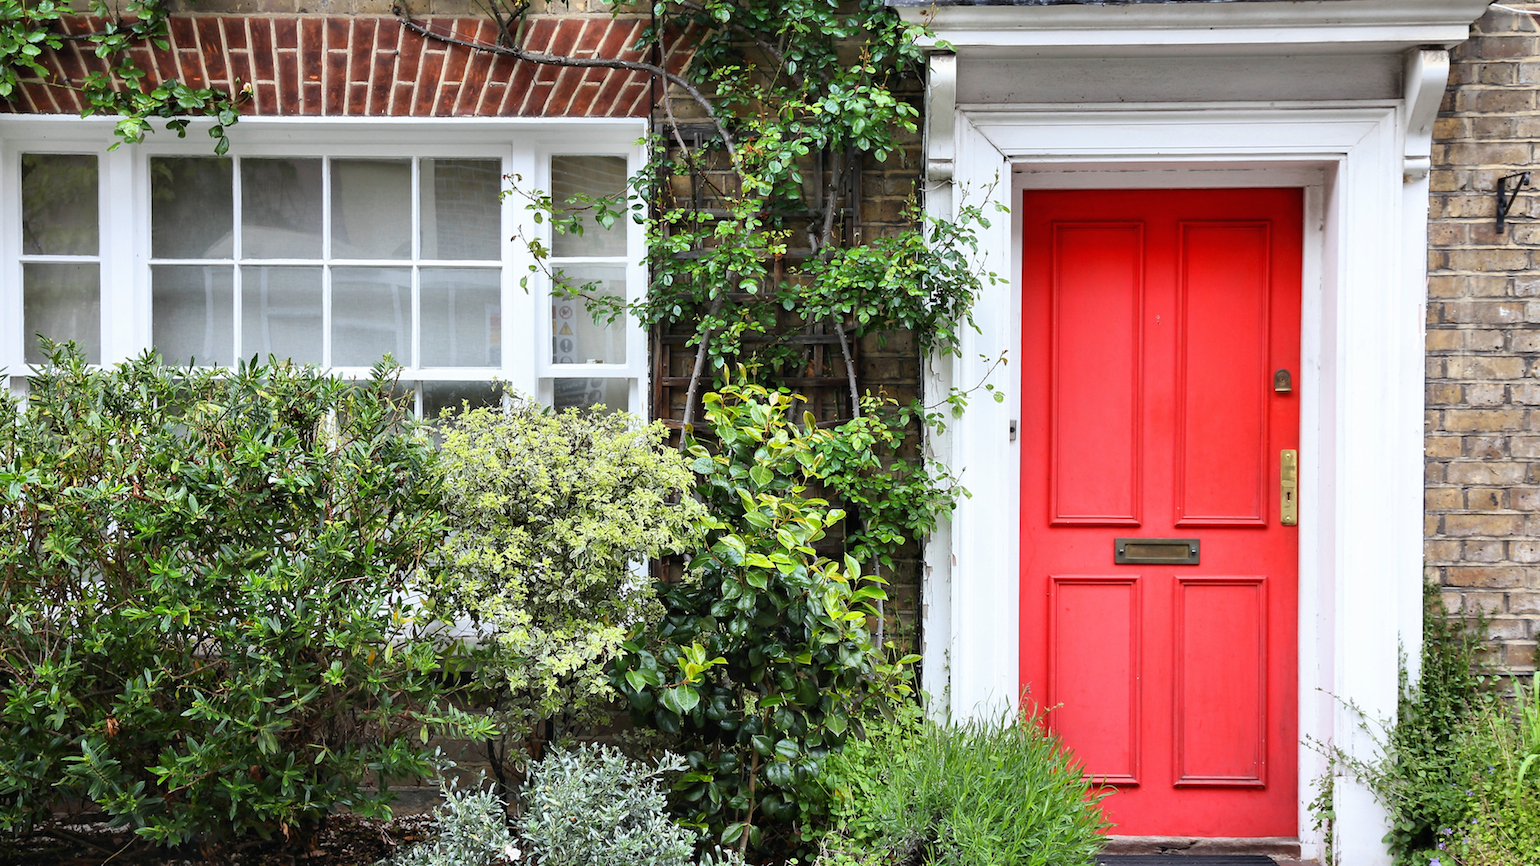 Inexpensive ways to spruce up your home for spring.